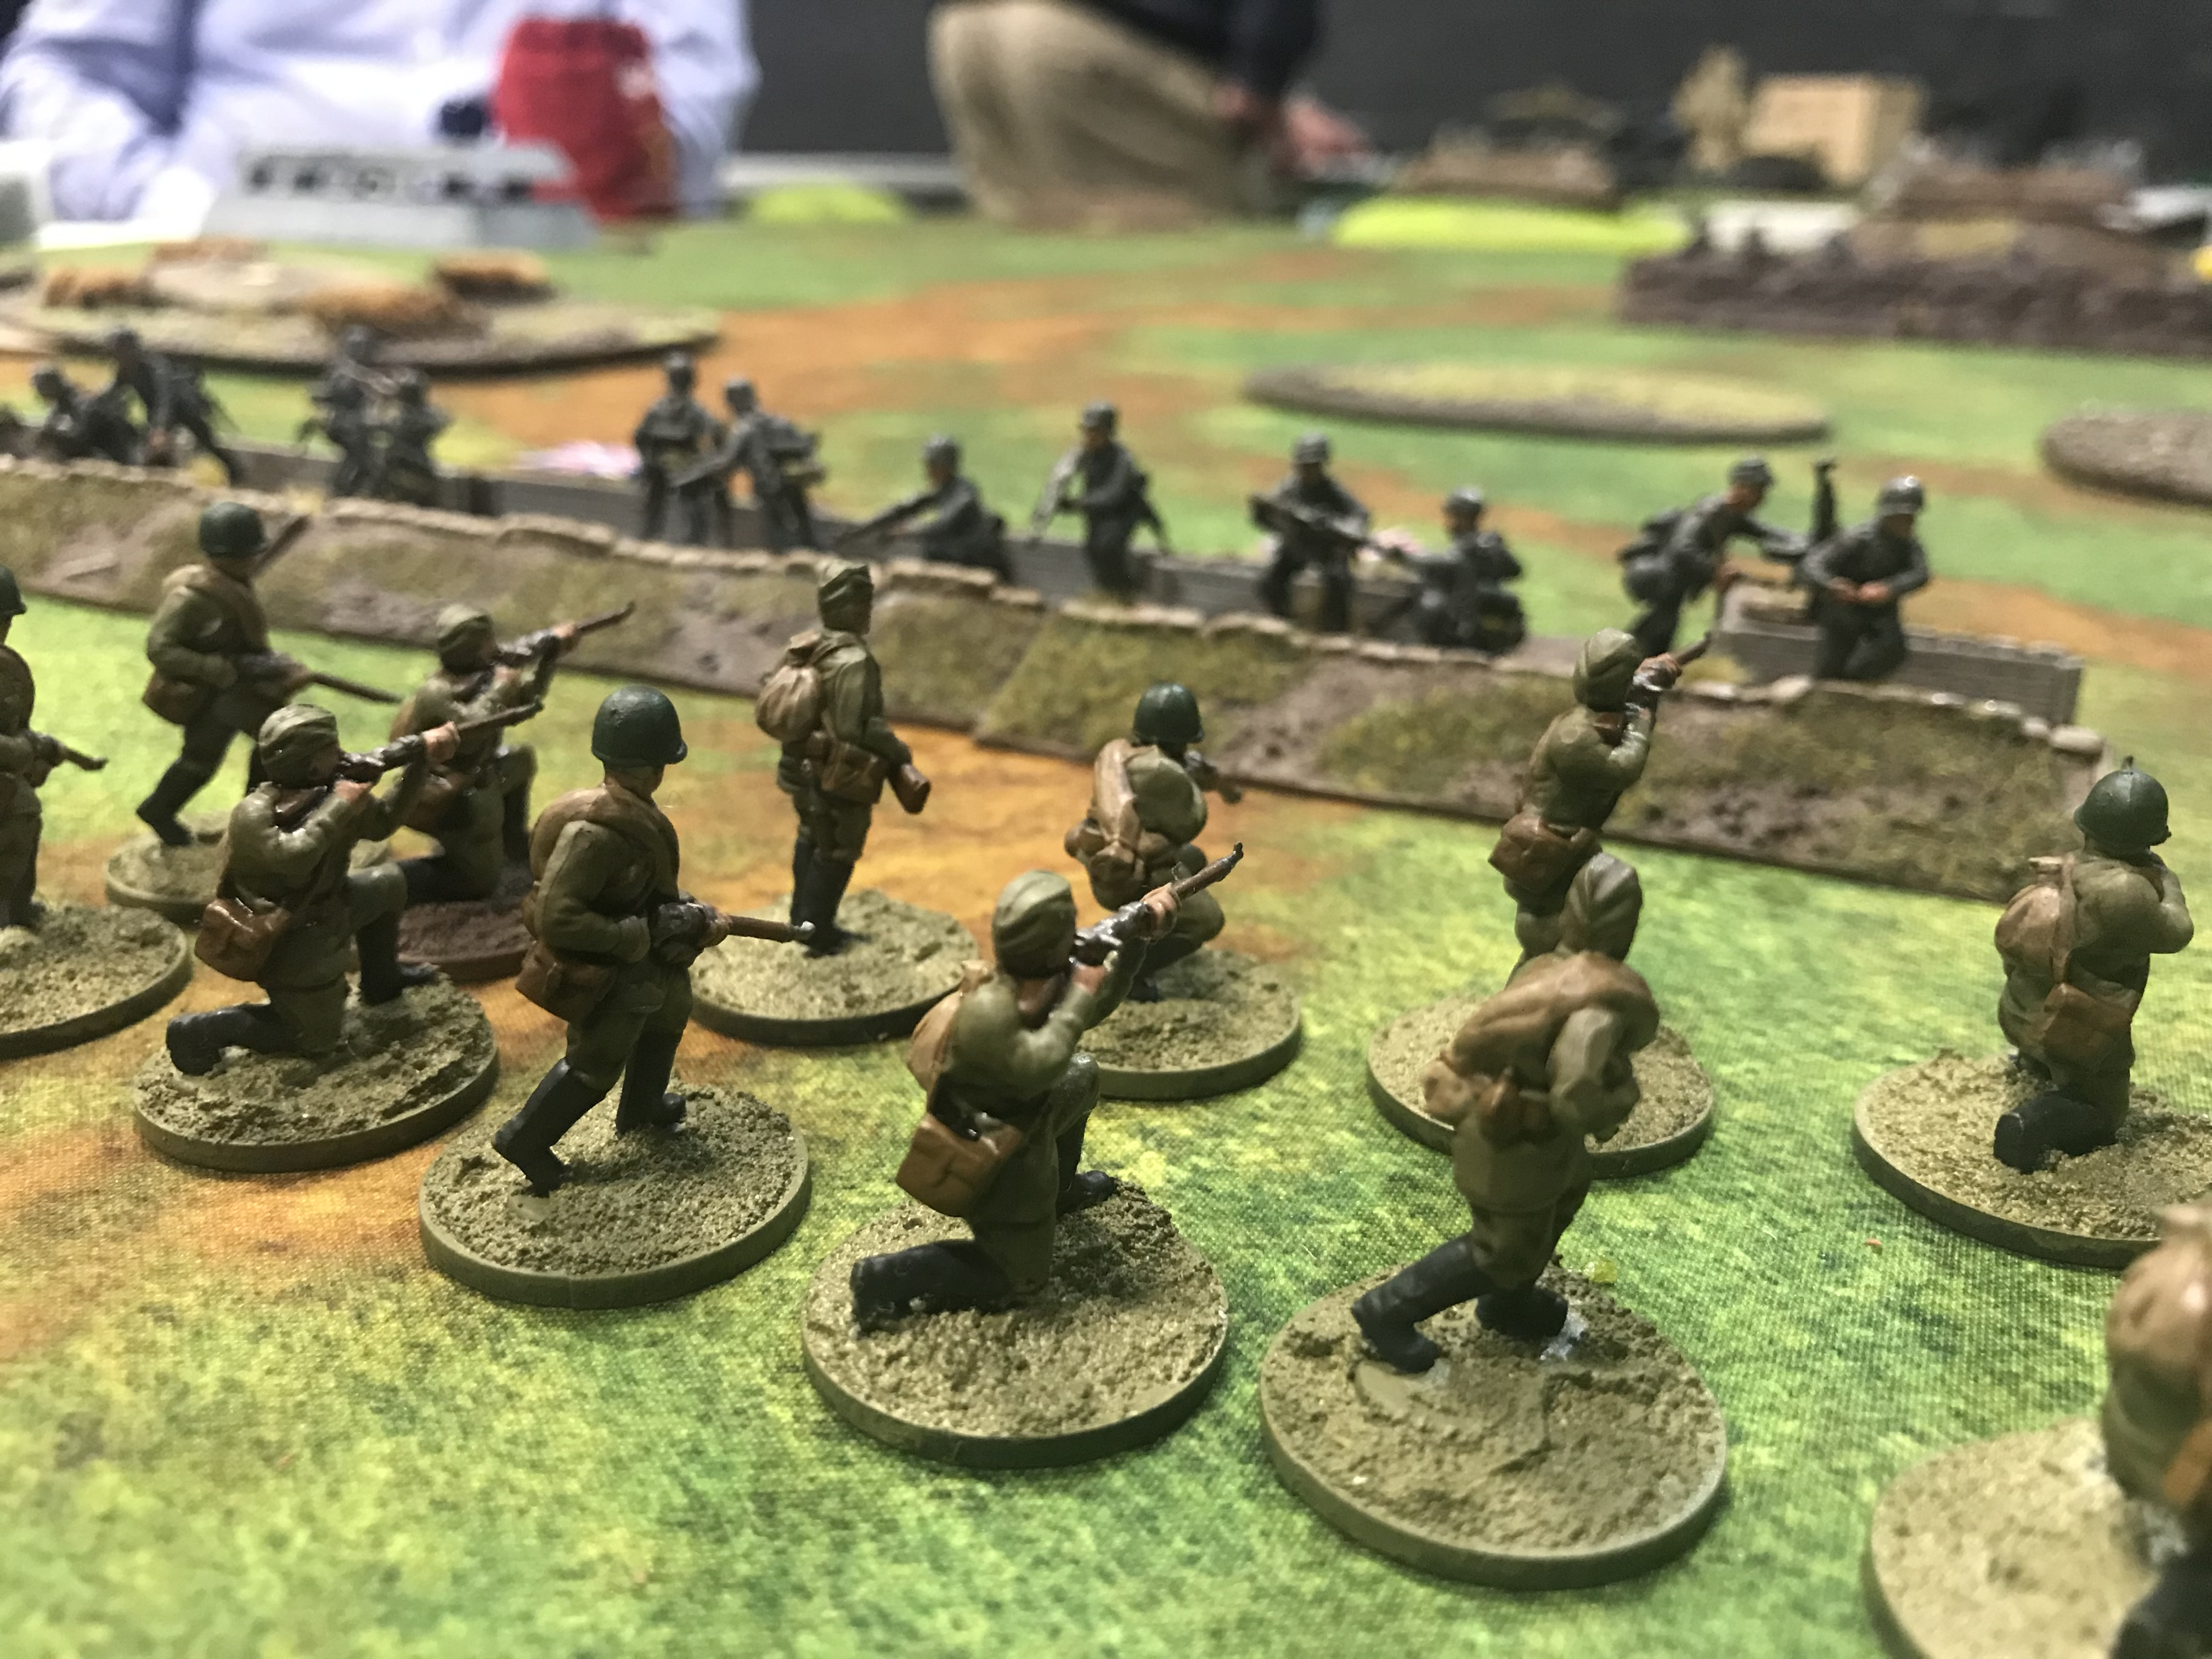 Eastern Liberators versus Kampfgruppe Pablo in a fierce infantry engagement